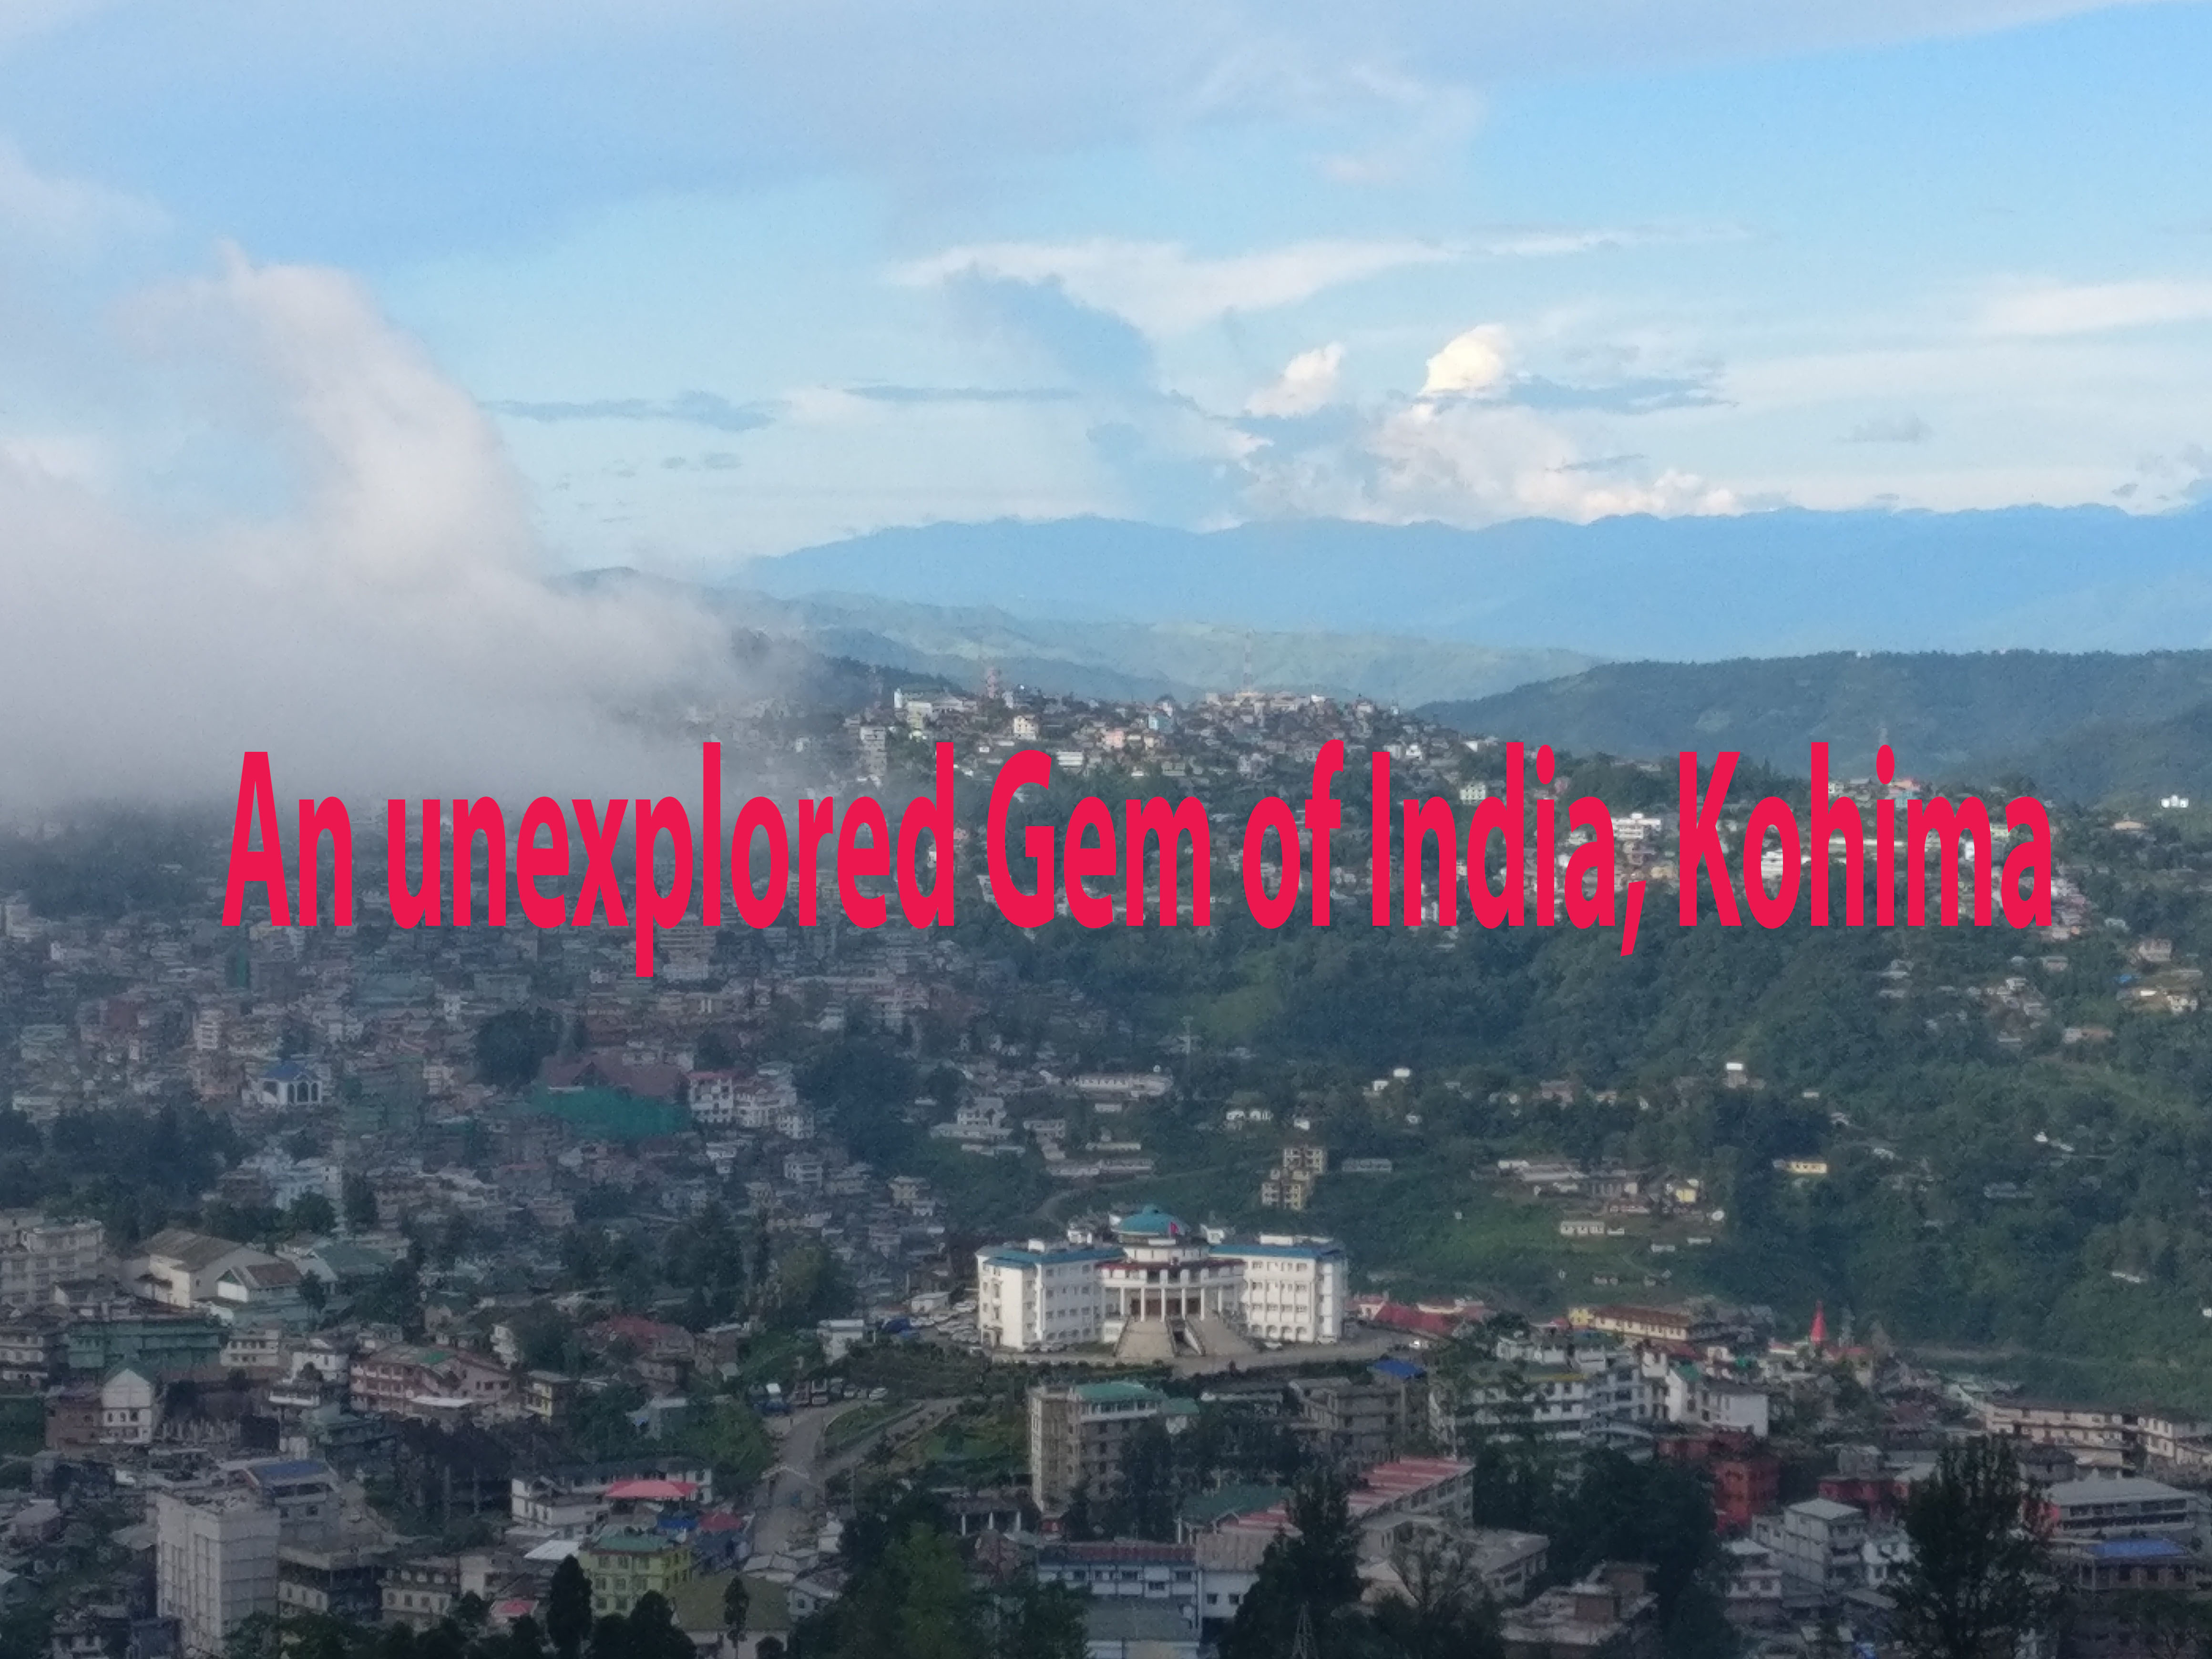 An unexplored Gem of India, Kohima